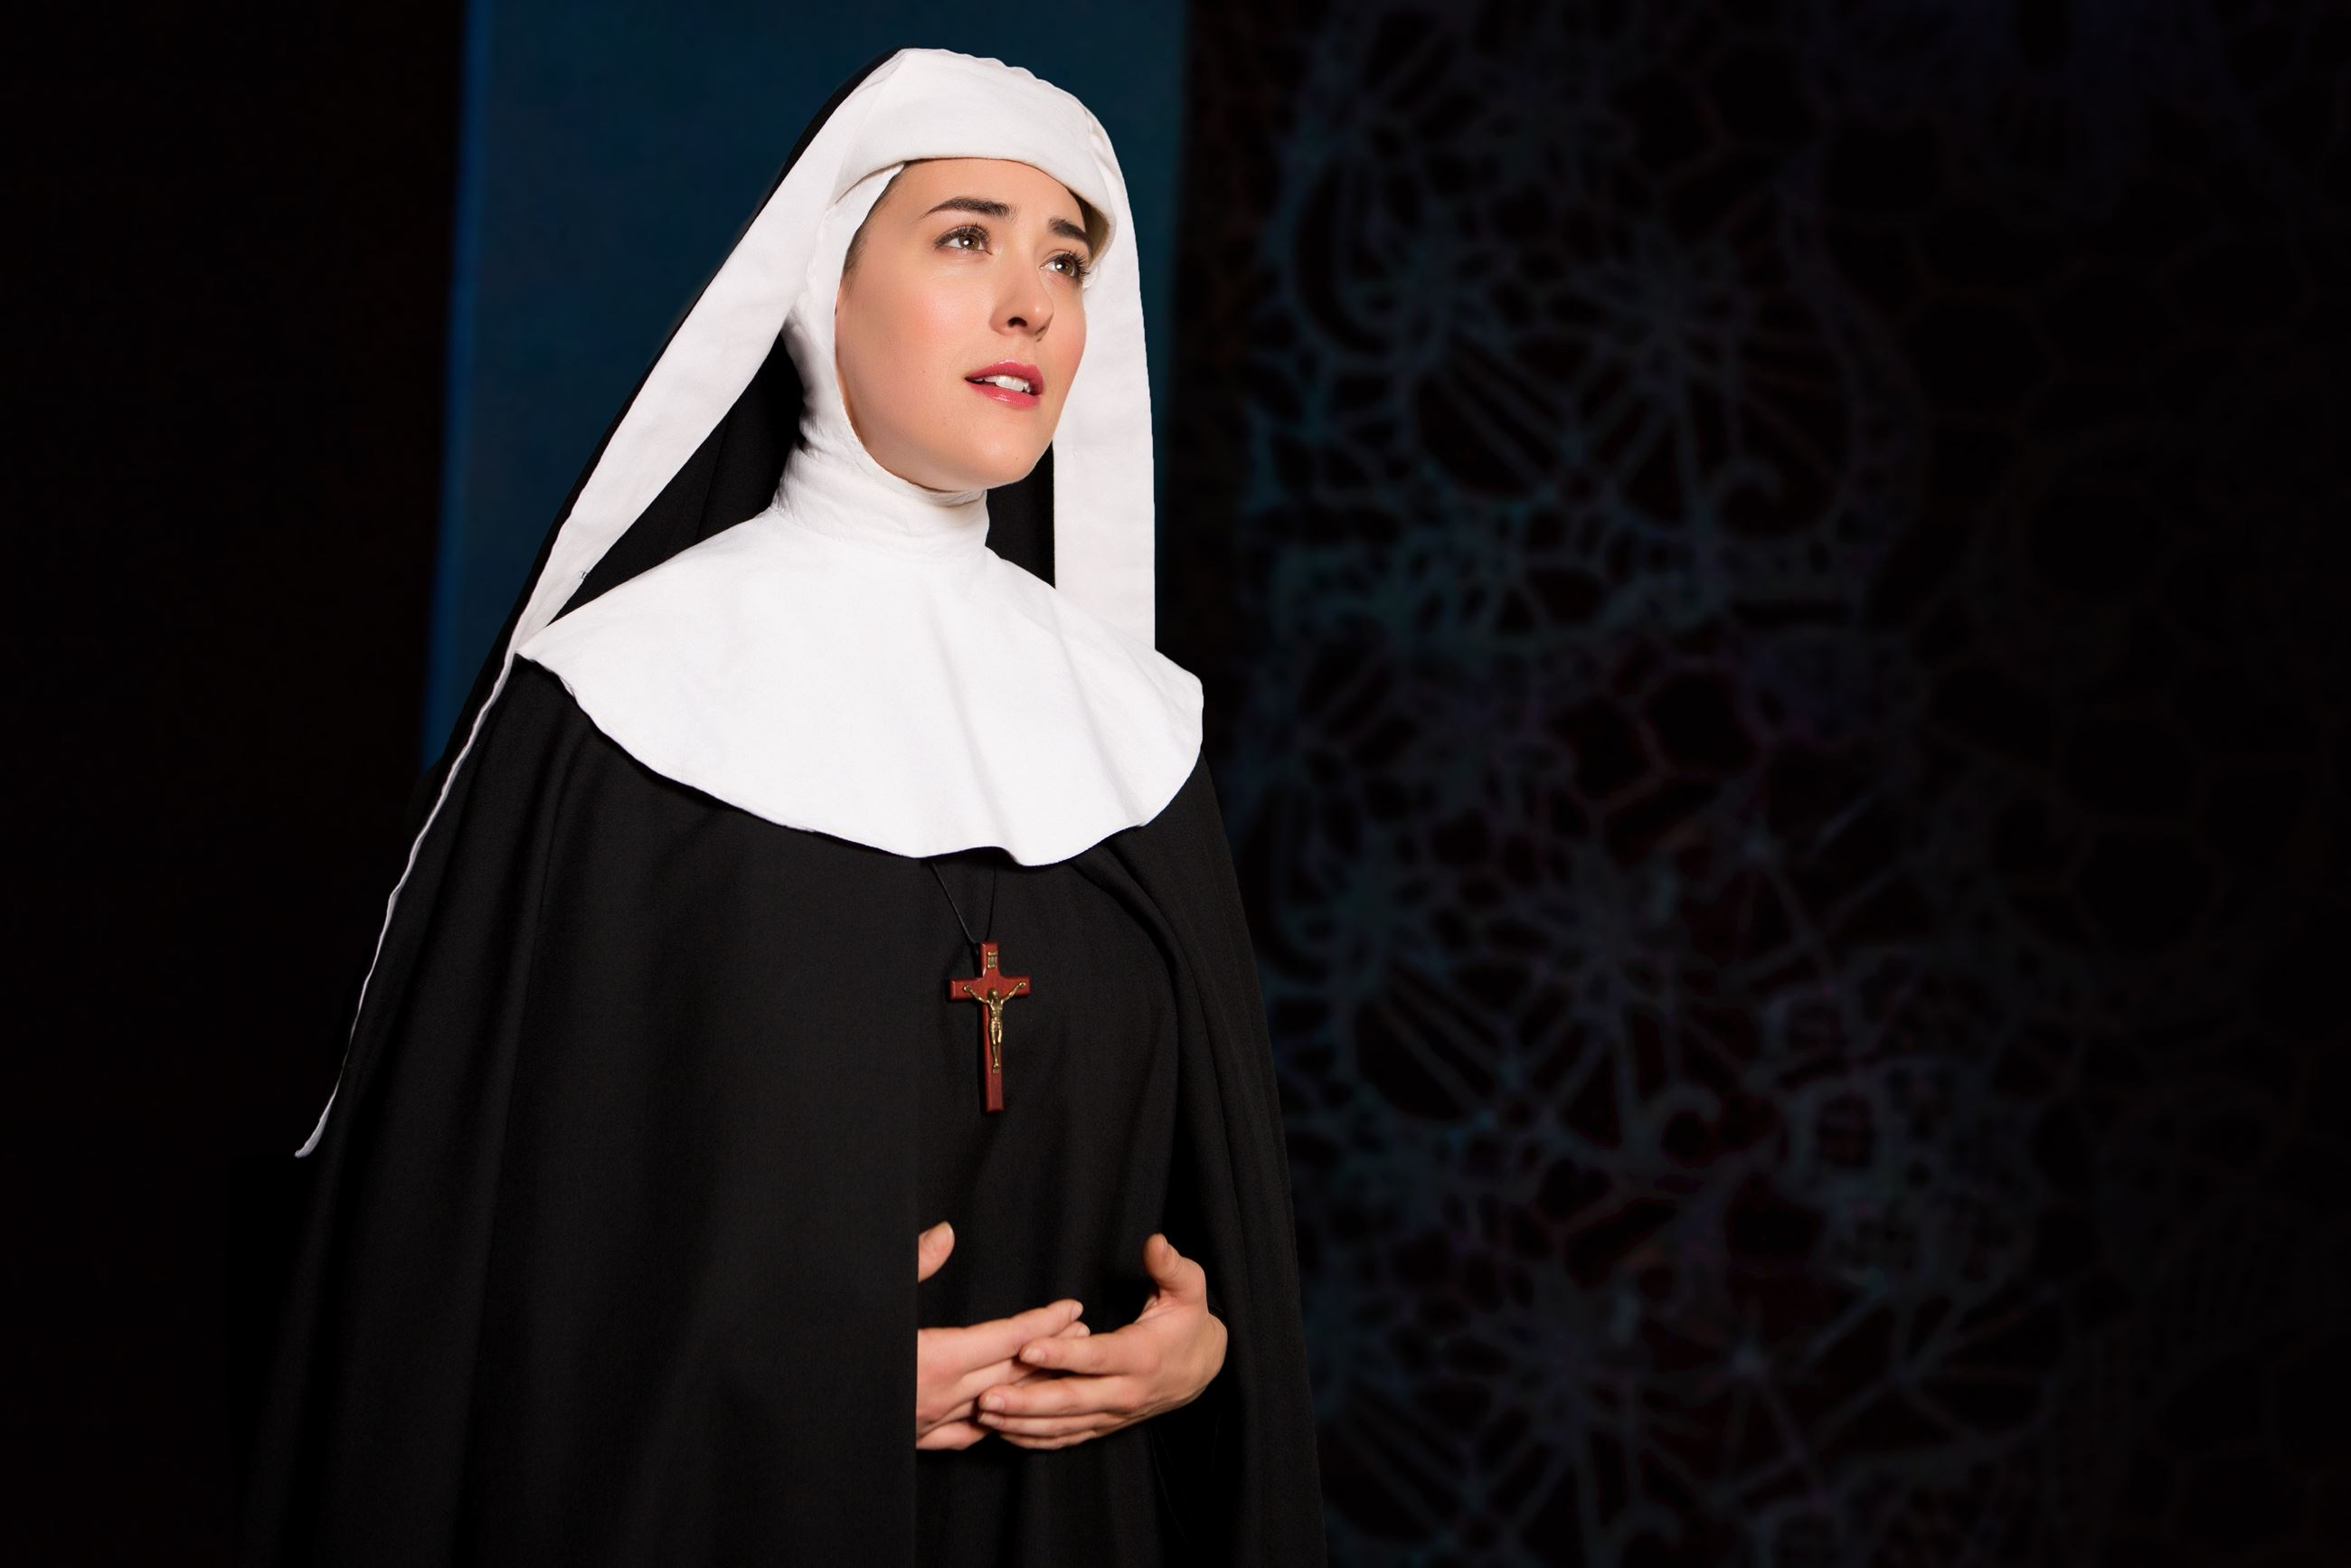 The Mother Abbess 2. Photo by Jeremy Daniel and Matthew Murphy